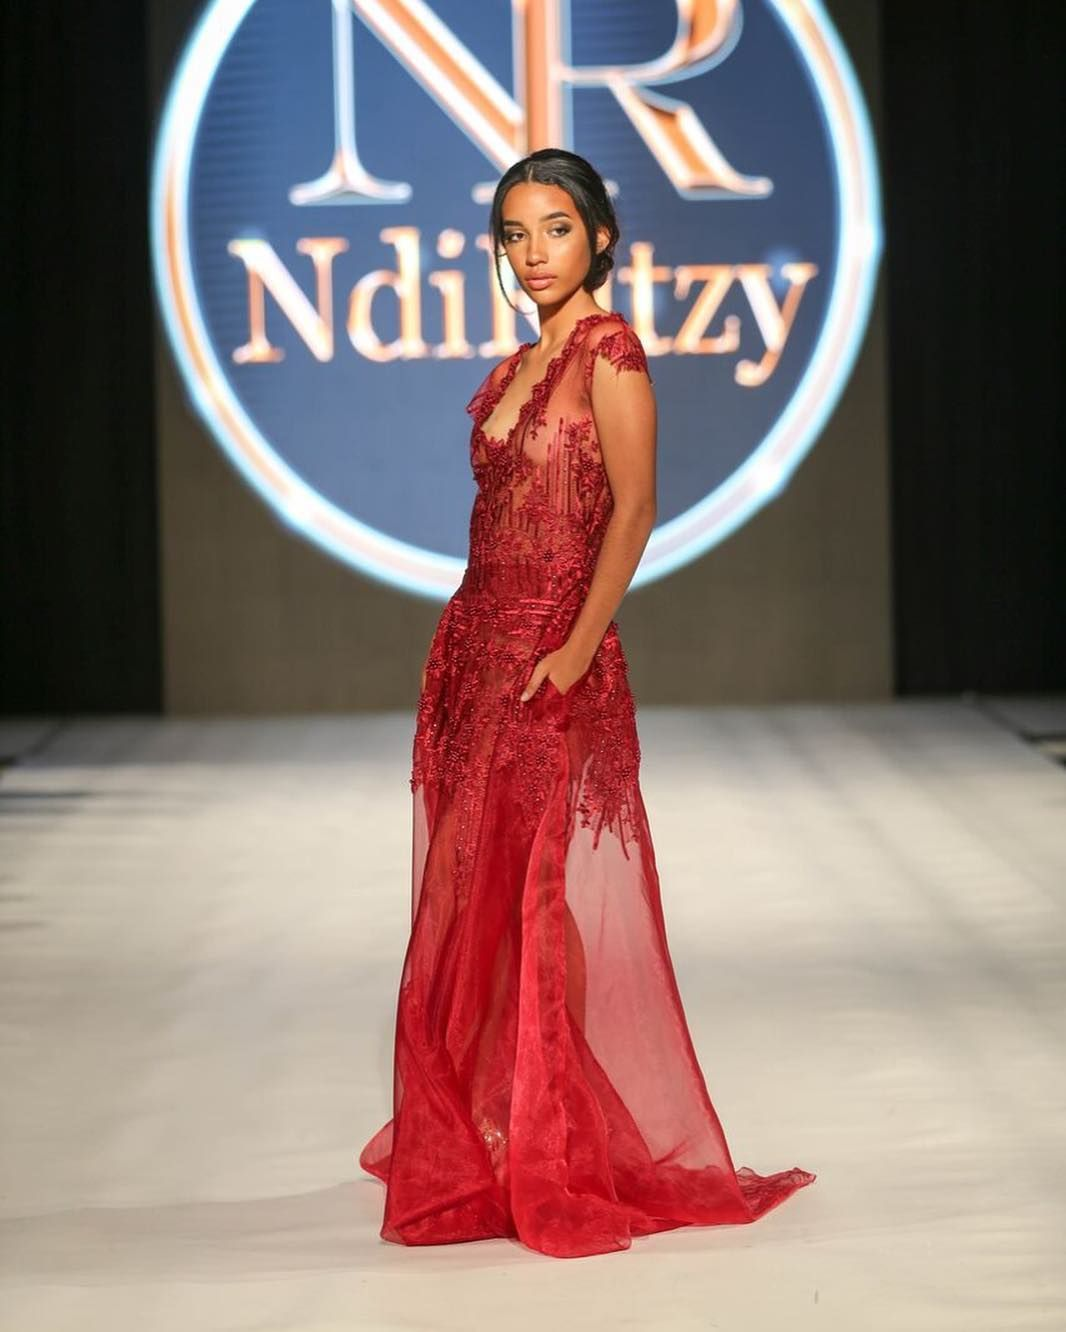 Dress is available now at ndiritzy for inquiry email me at